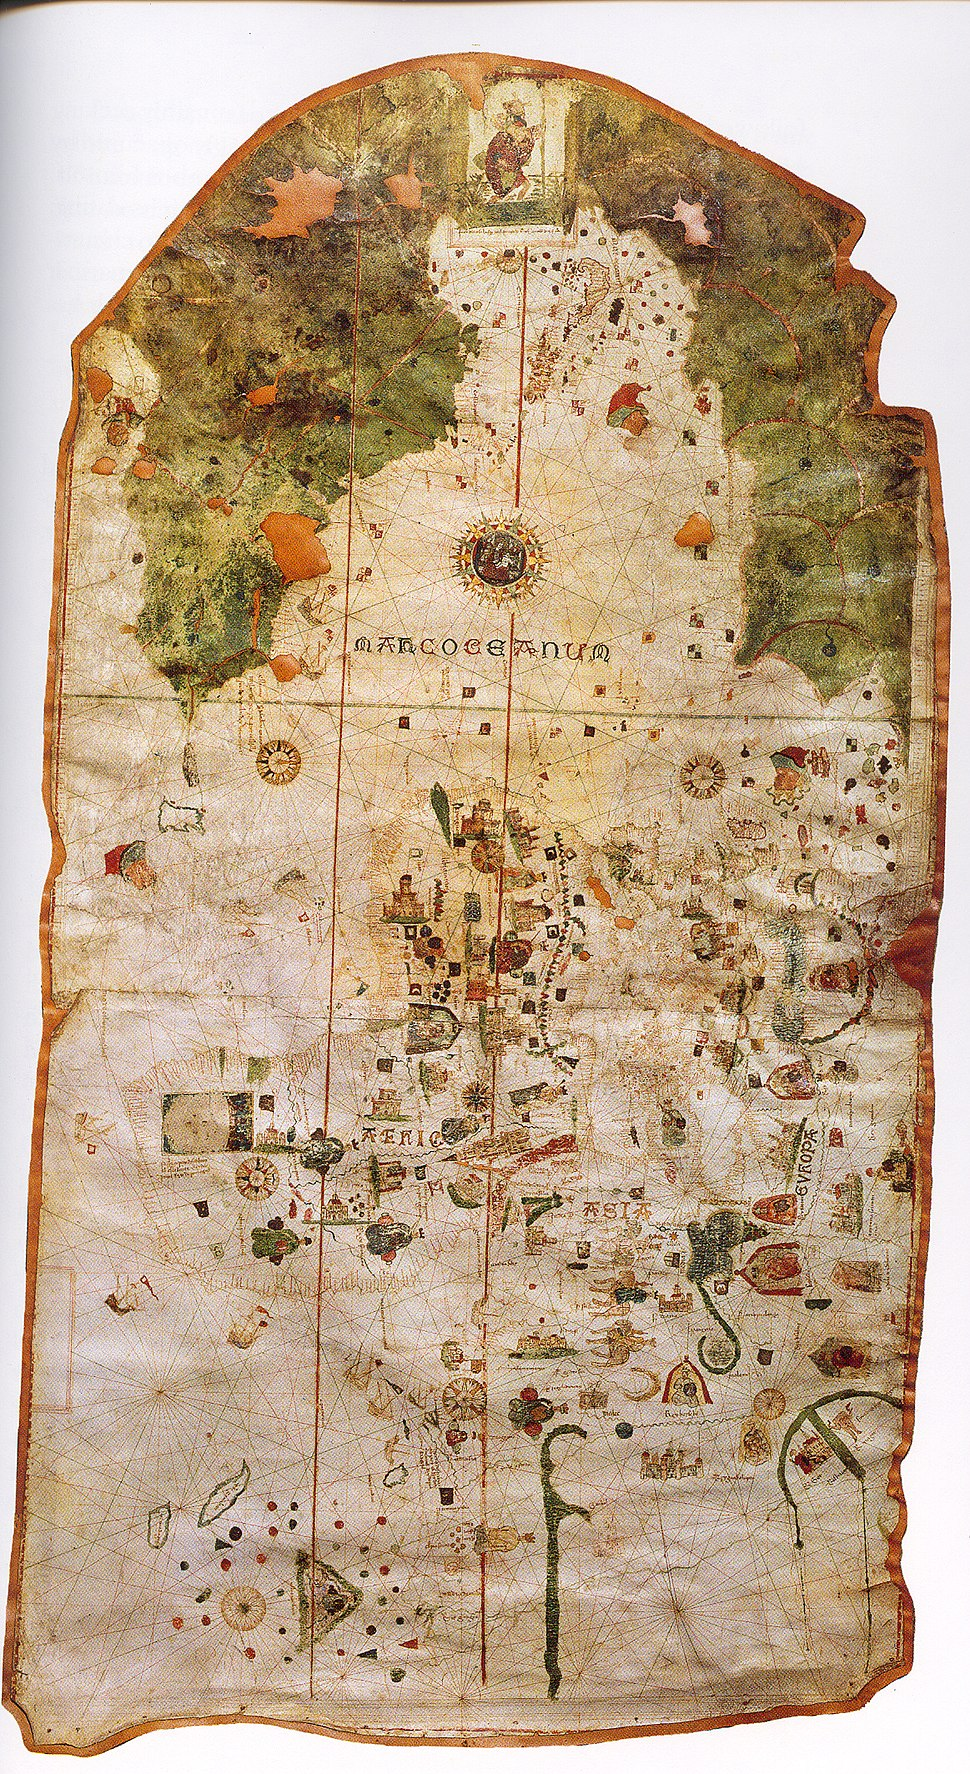 1500 map by Juan de la Cosa